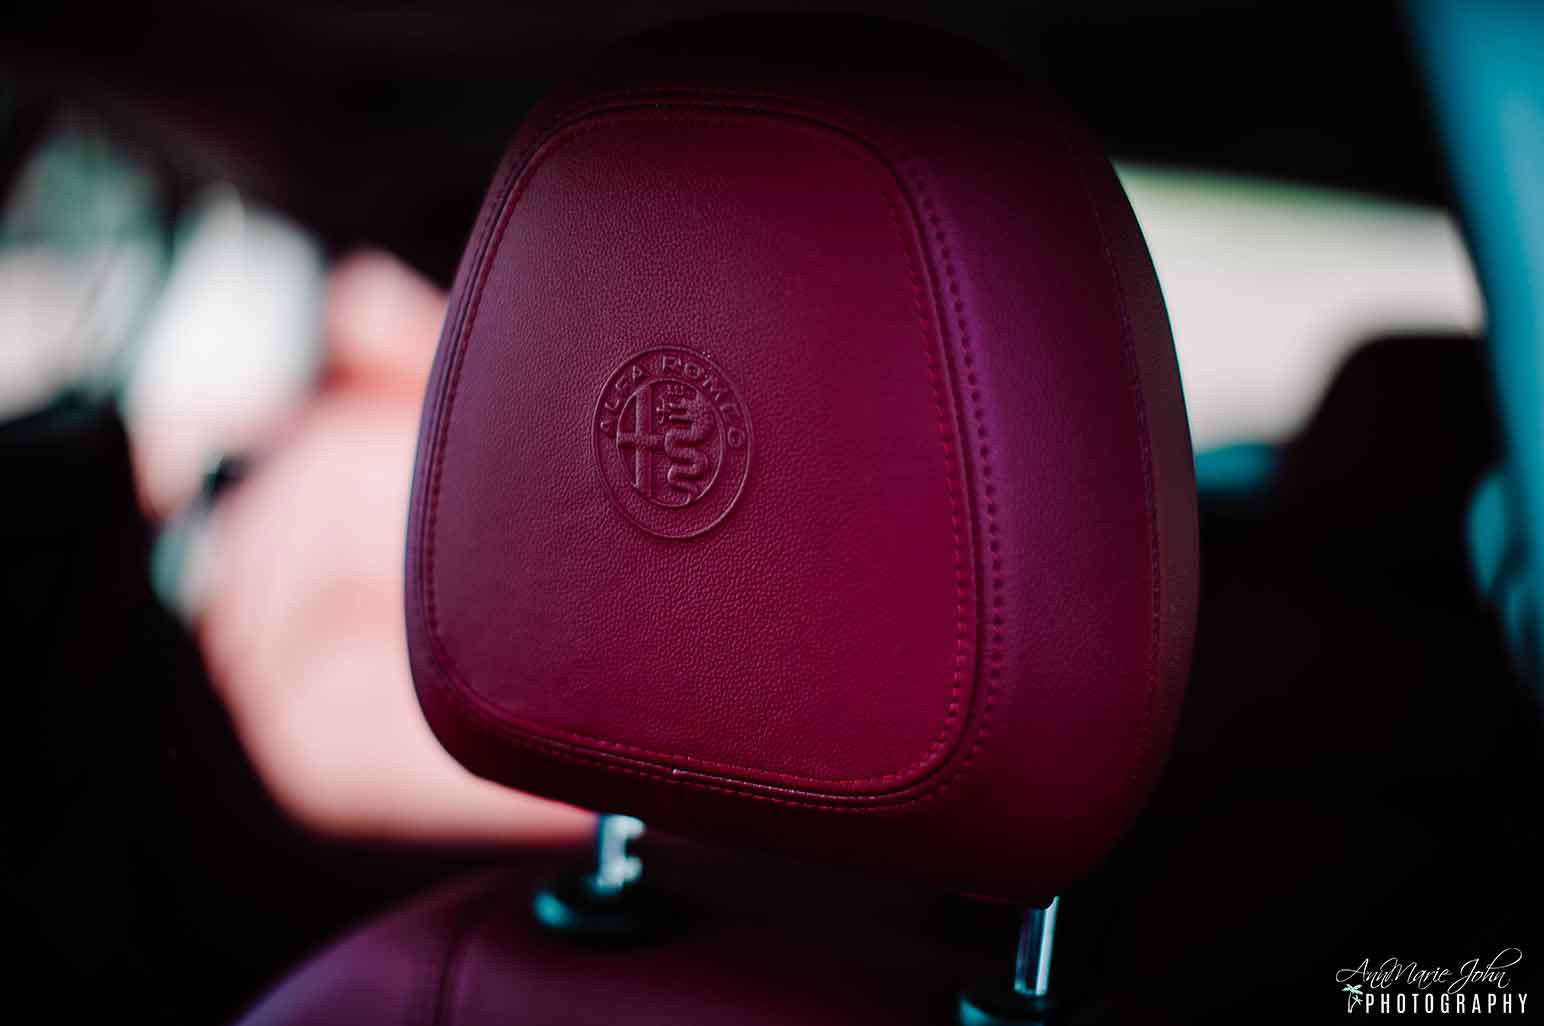 Different Ways to Make Your Car Seat More Comfortable